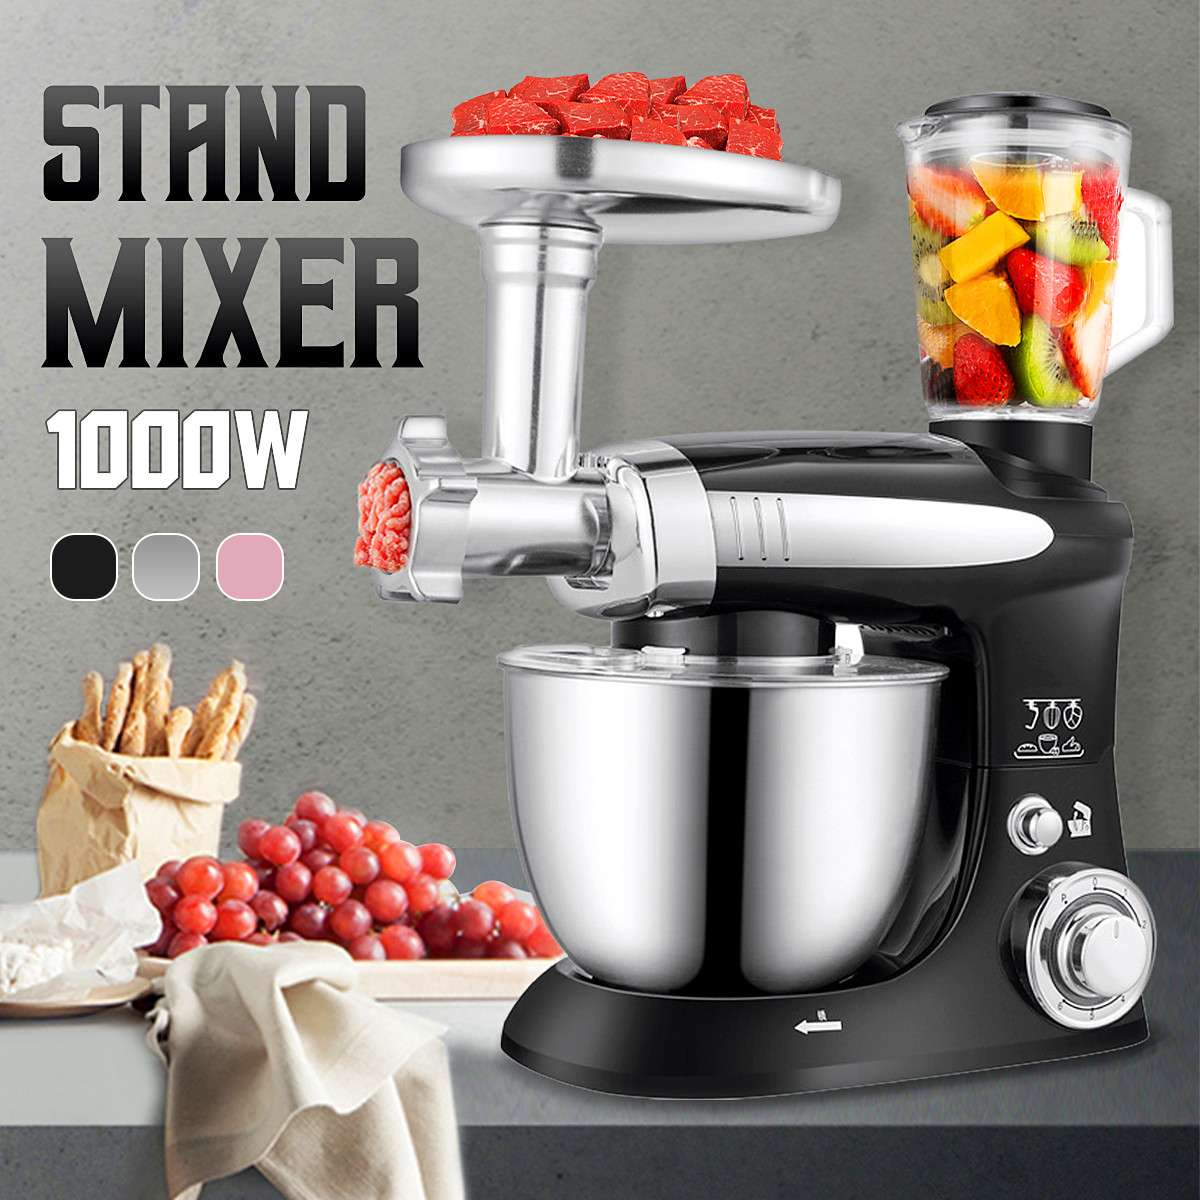 6 Speed Stand Mixer Multifunctional Electric Food-Blender Mixer 1000W 220V Meat Grinder Food Processor Kitchen Cooking Tools